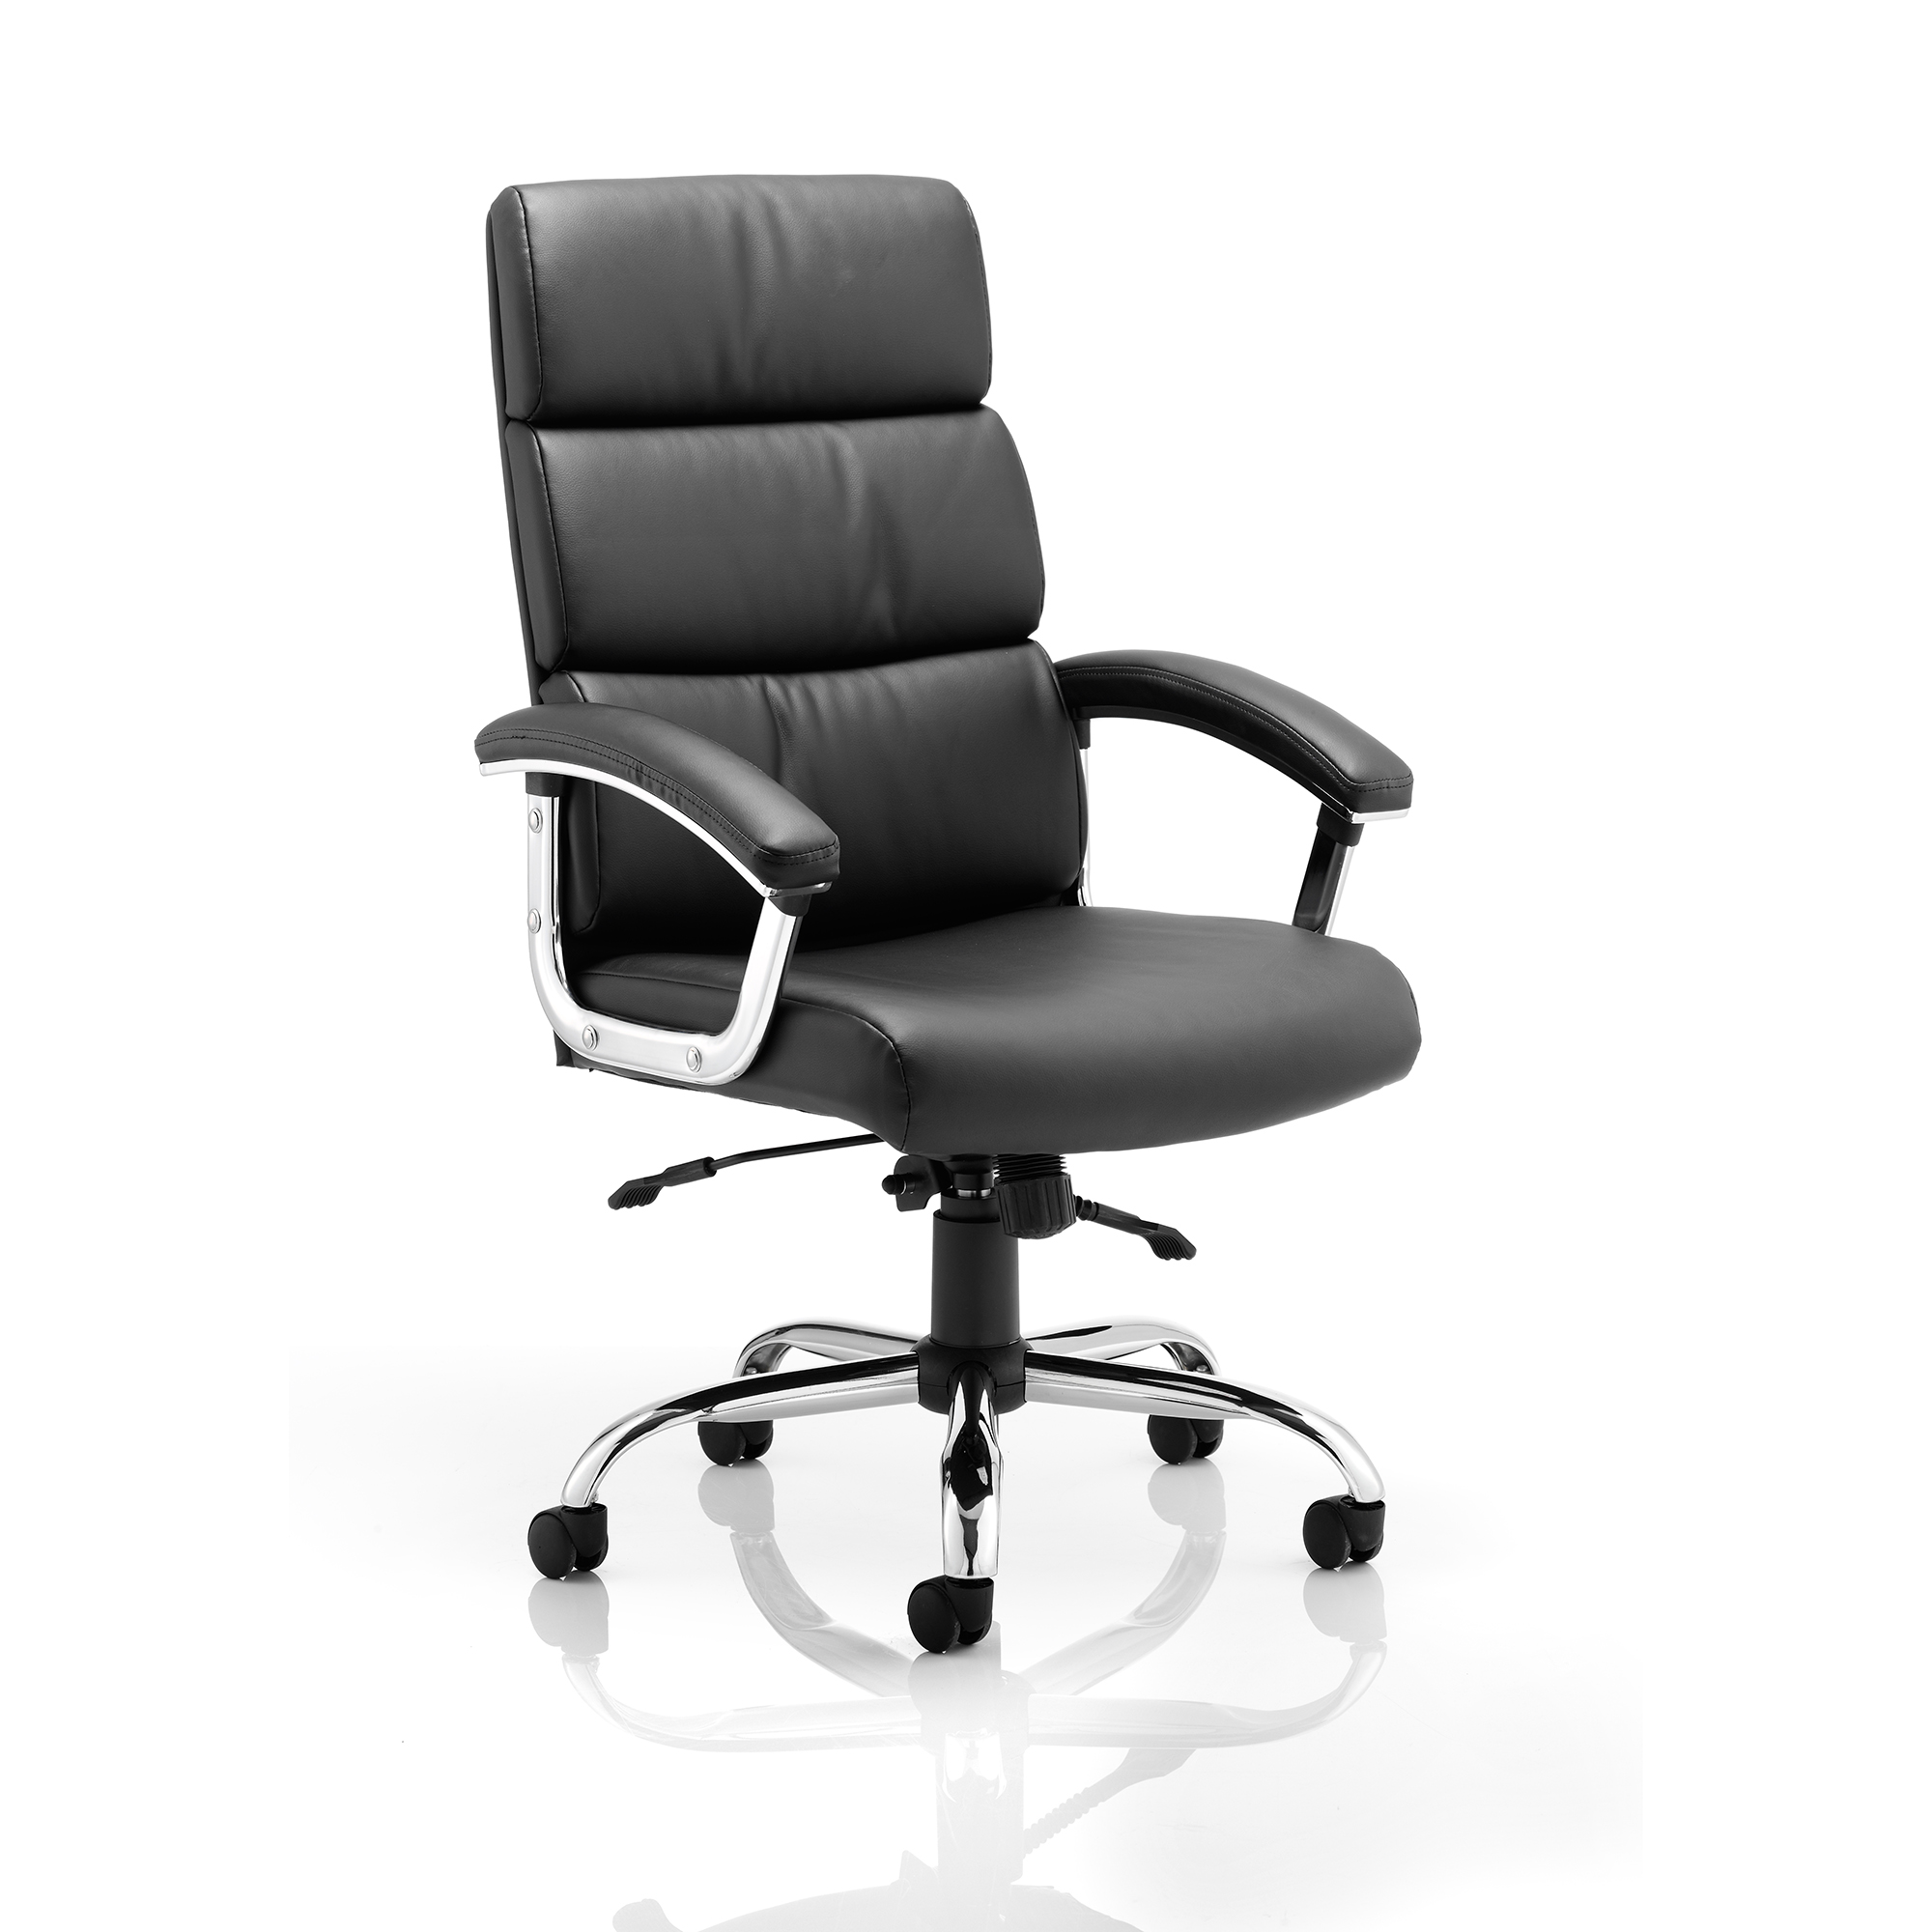 Executive seating Sonix Desire High Executive Chair With Arms Black Ref EX000019